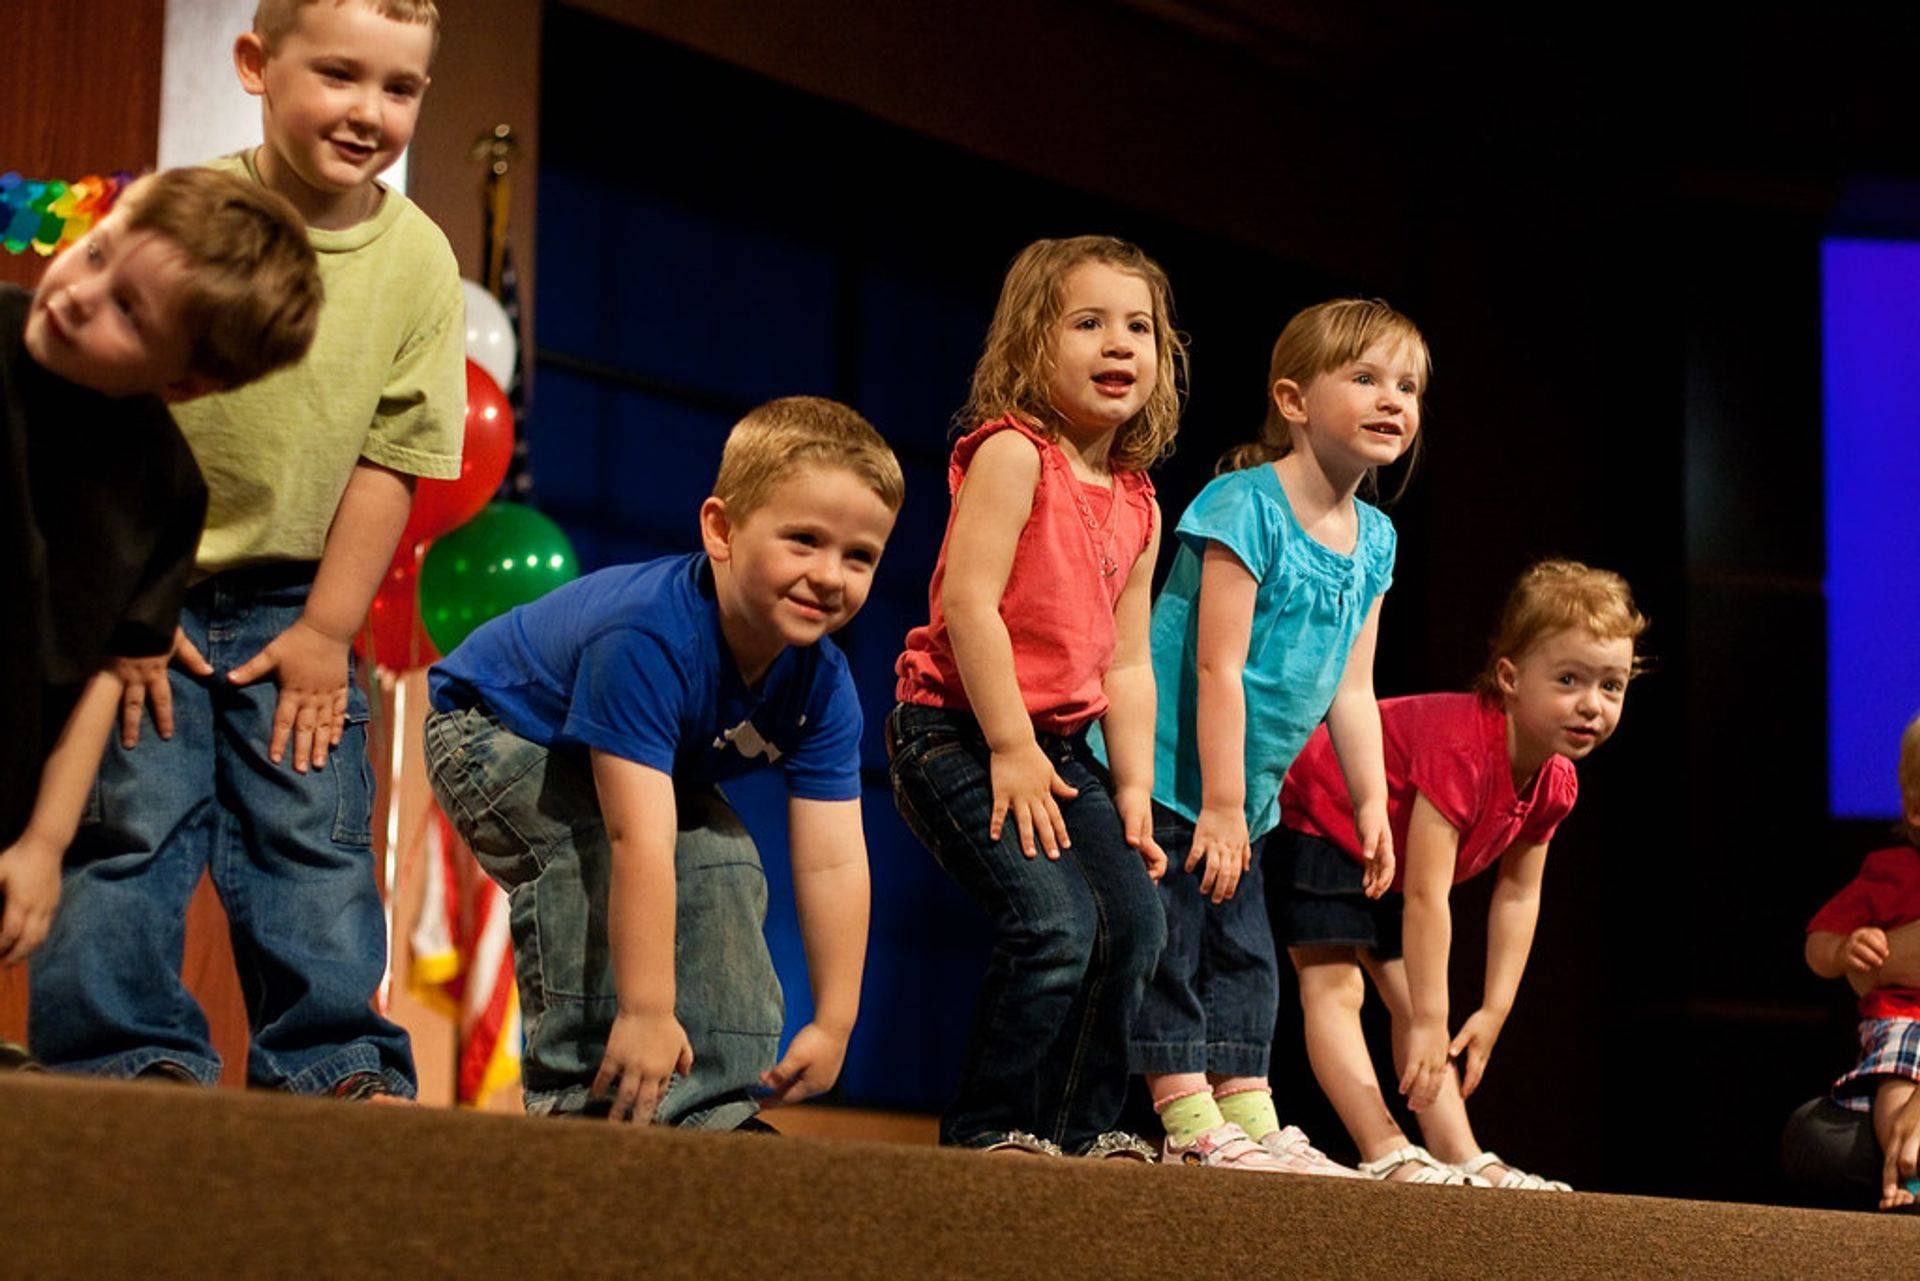 children at a program